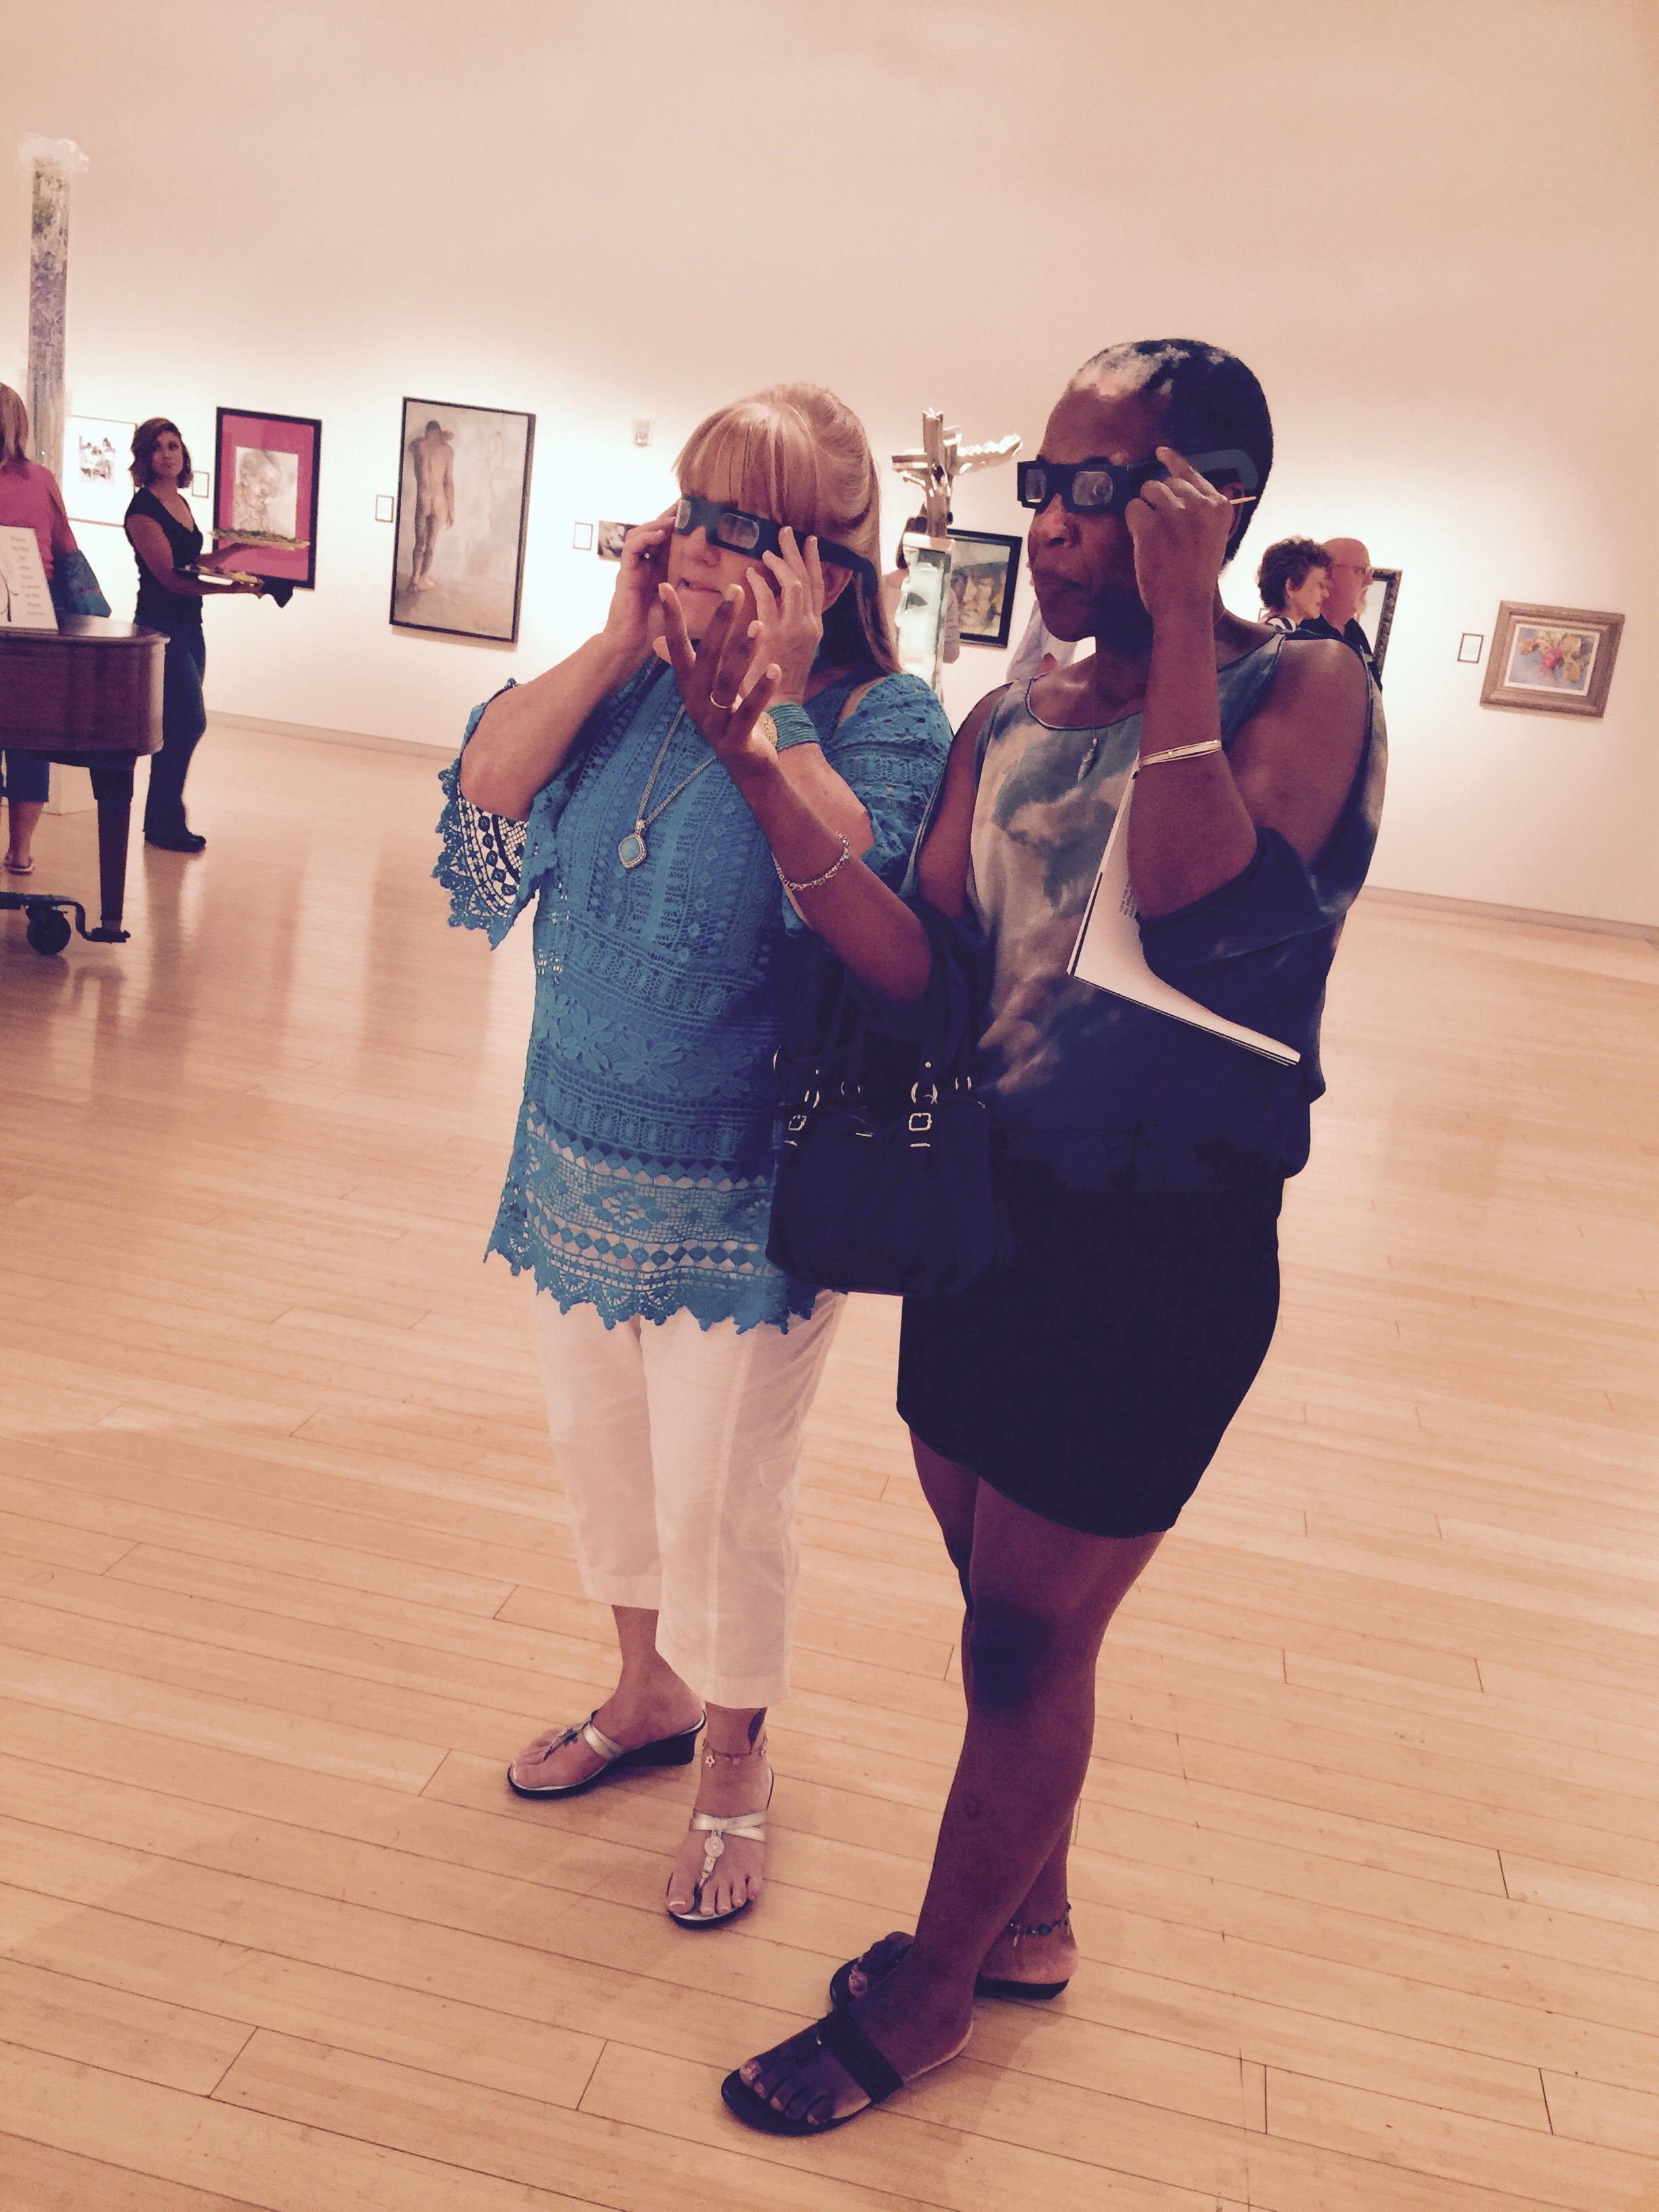 My mom and her friend Tari, looking at all the painting with 3D glasses they found.